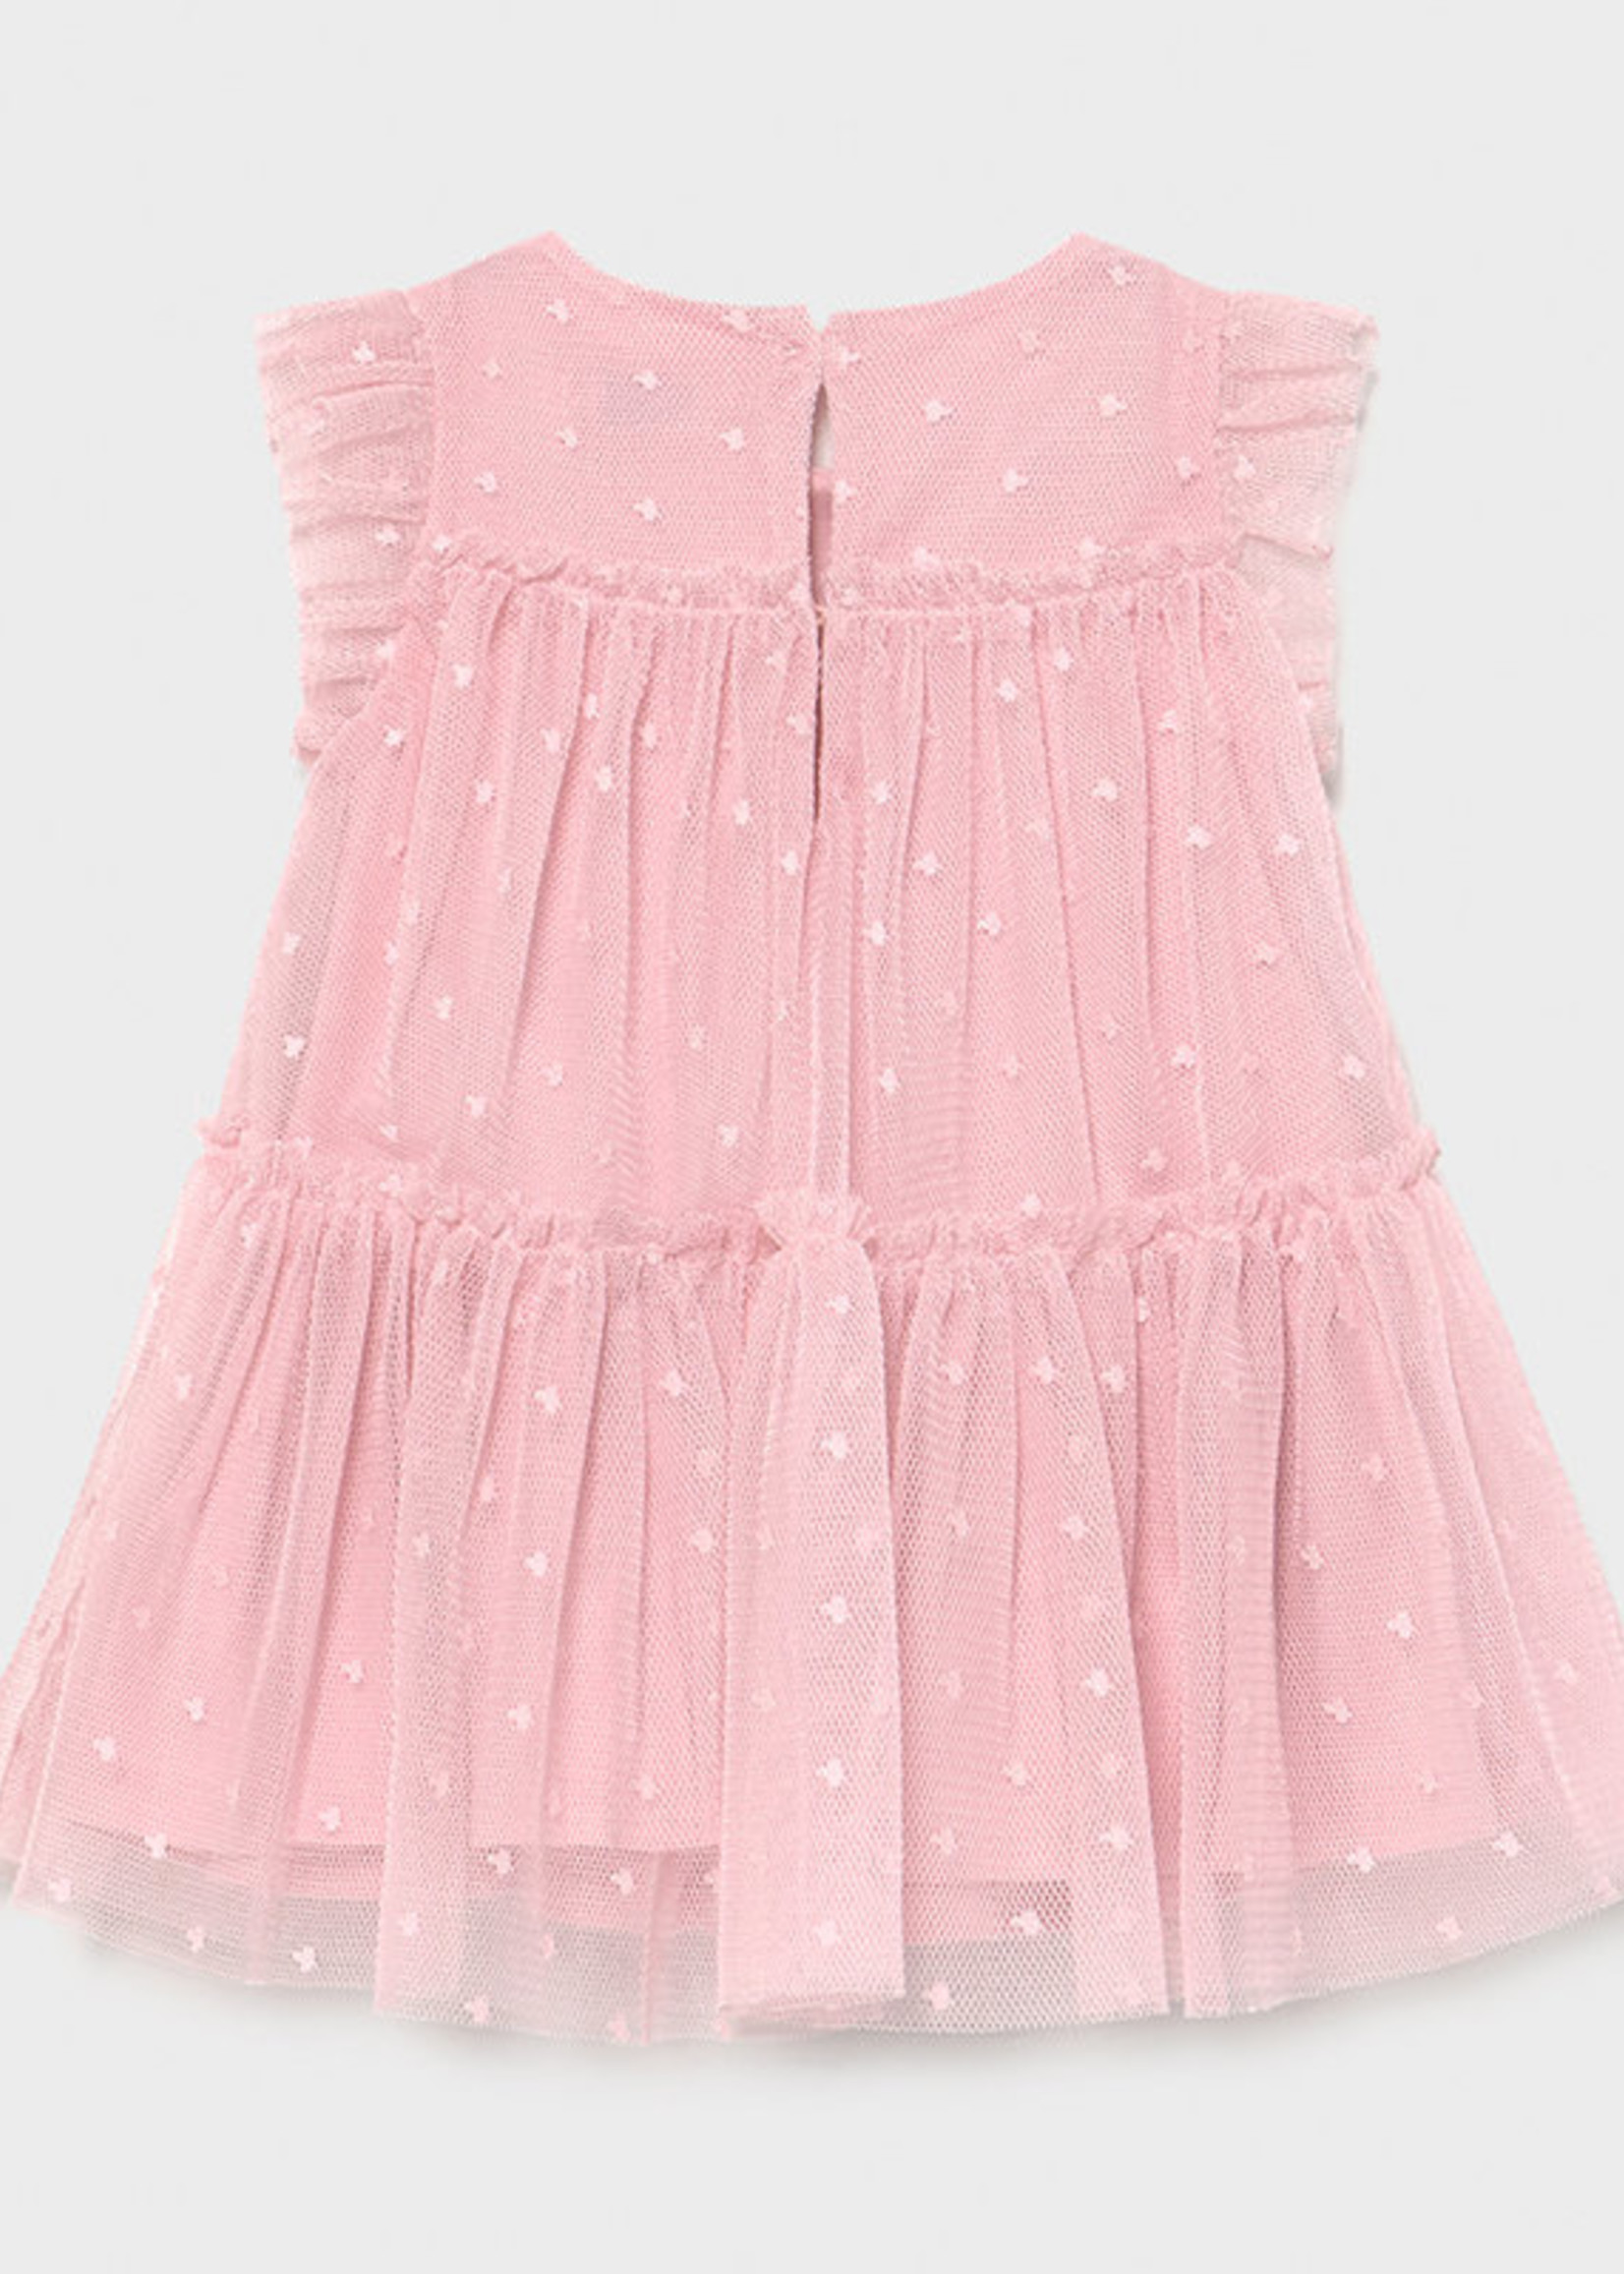 Mayoral Mayoral tulle dress for baby girl pink